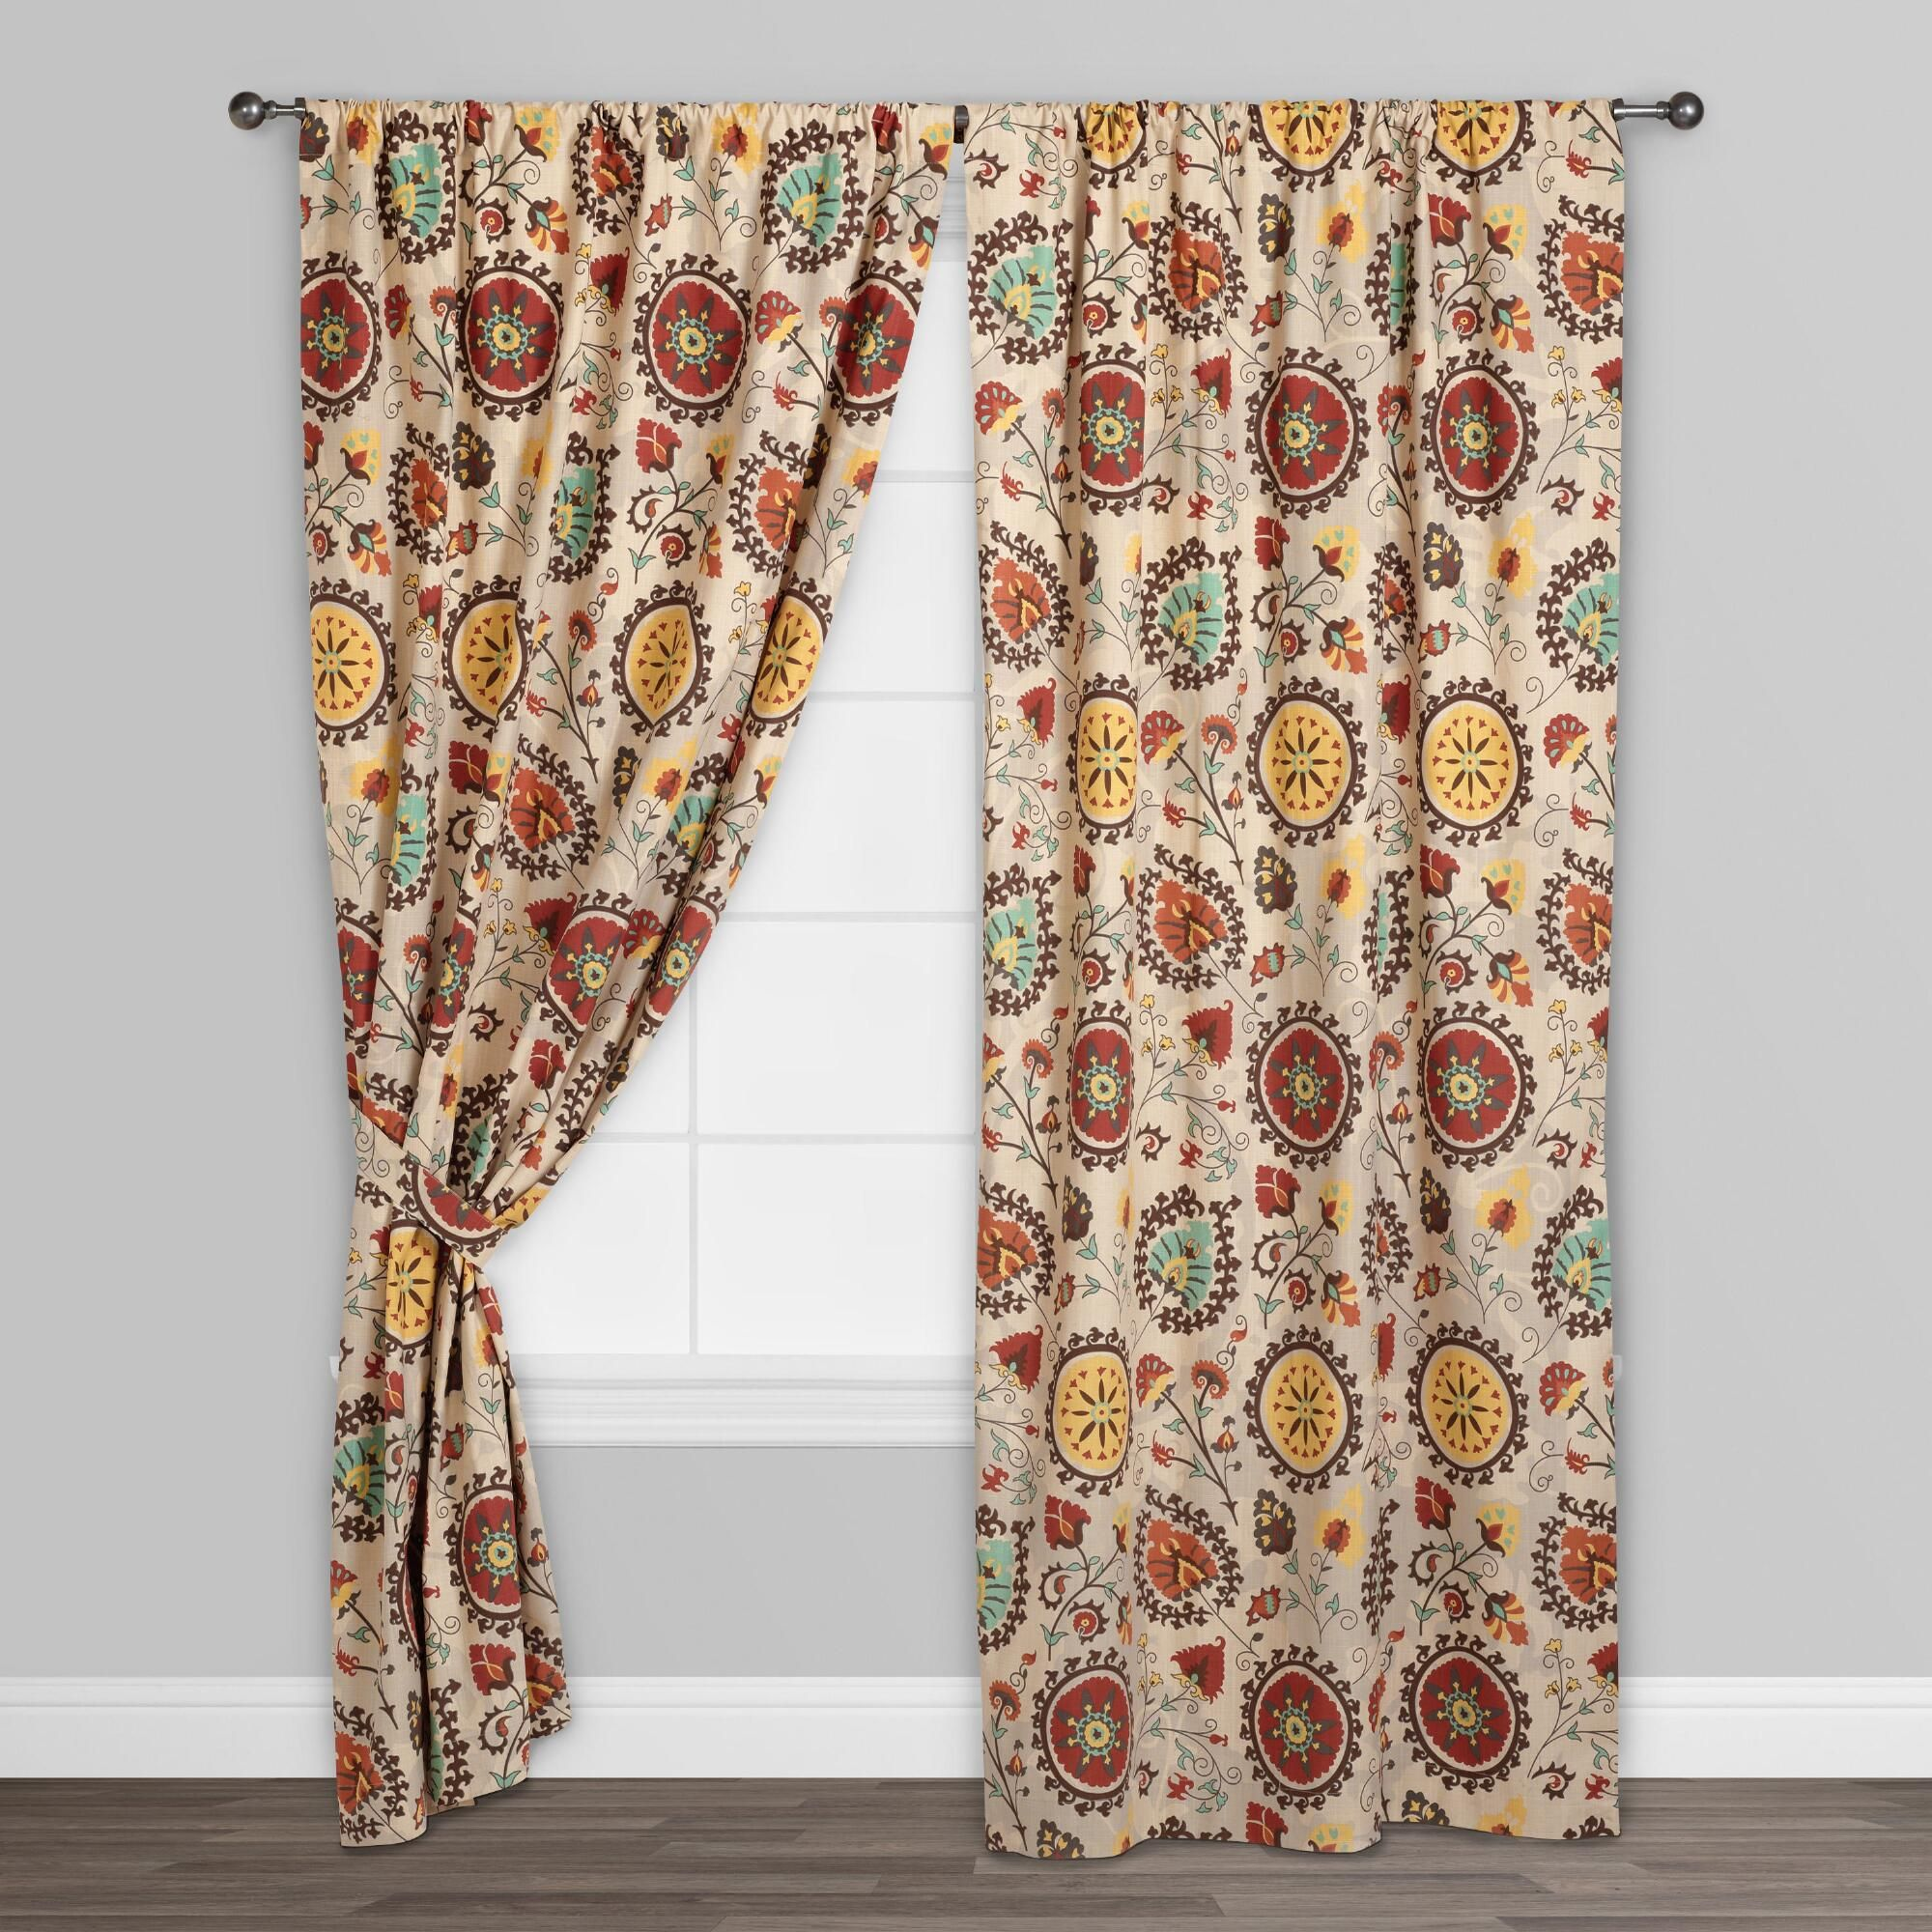 Suzani Prints Are Known For Their Intriguing And Intricate Design A Staple In Central Asia Making Our Gold Printed Curtains Colorful Curtains Floral Curtains